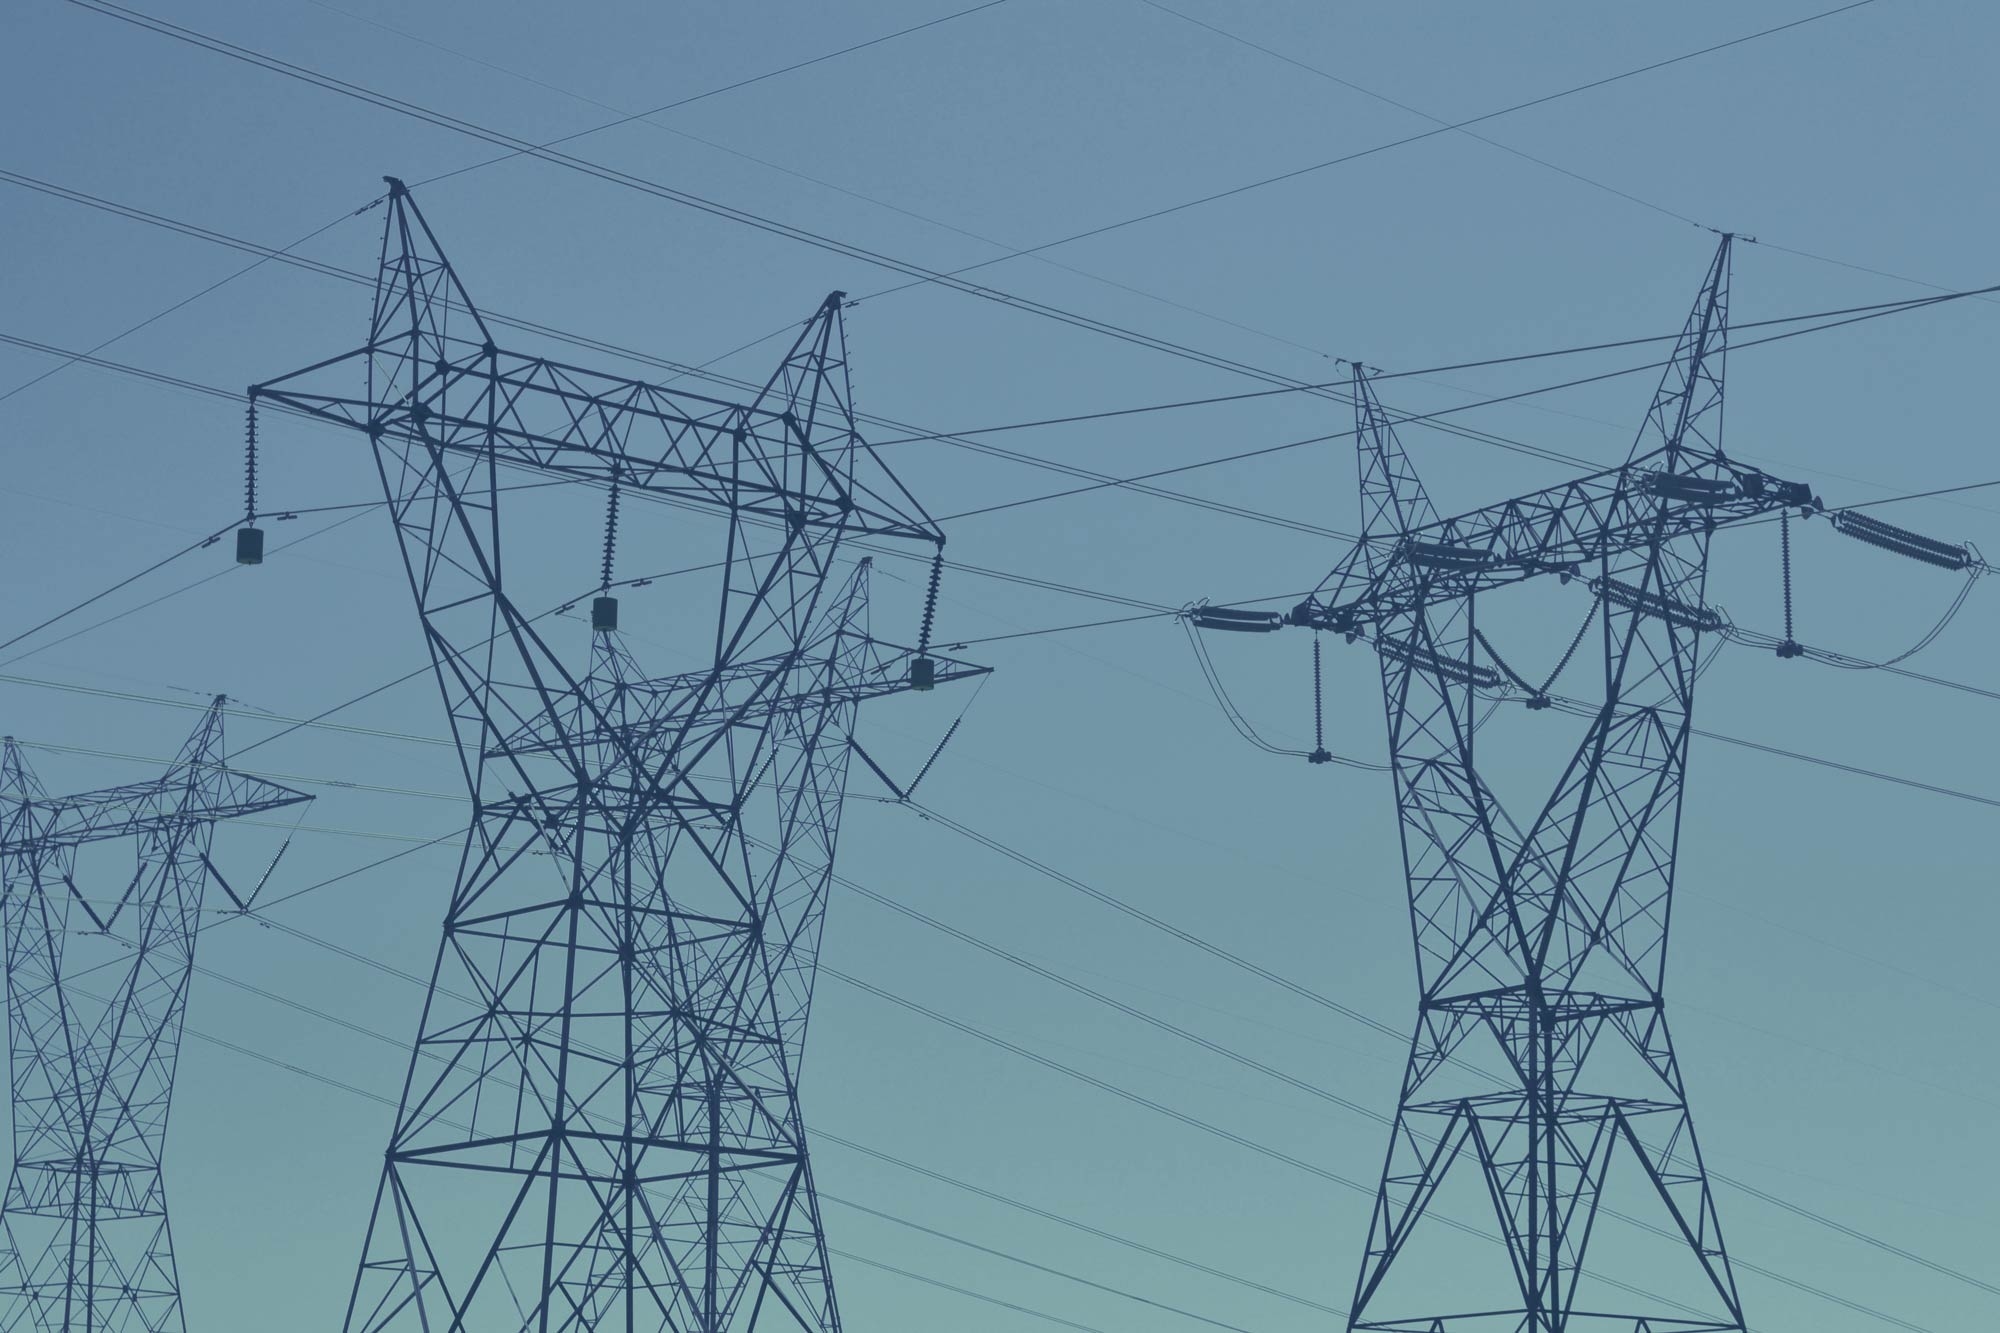 Two lines of large electricity towers powering the grid intersect, with clear blue skies in the background.